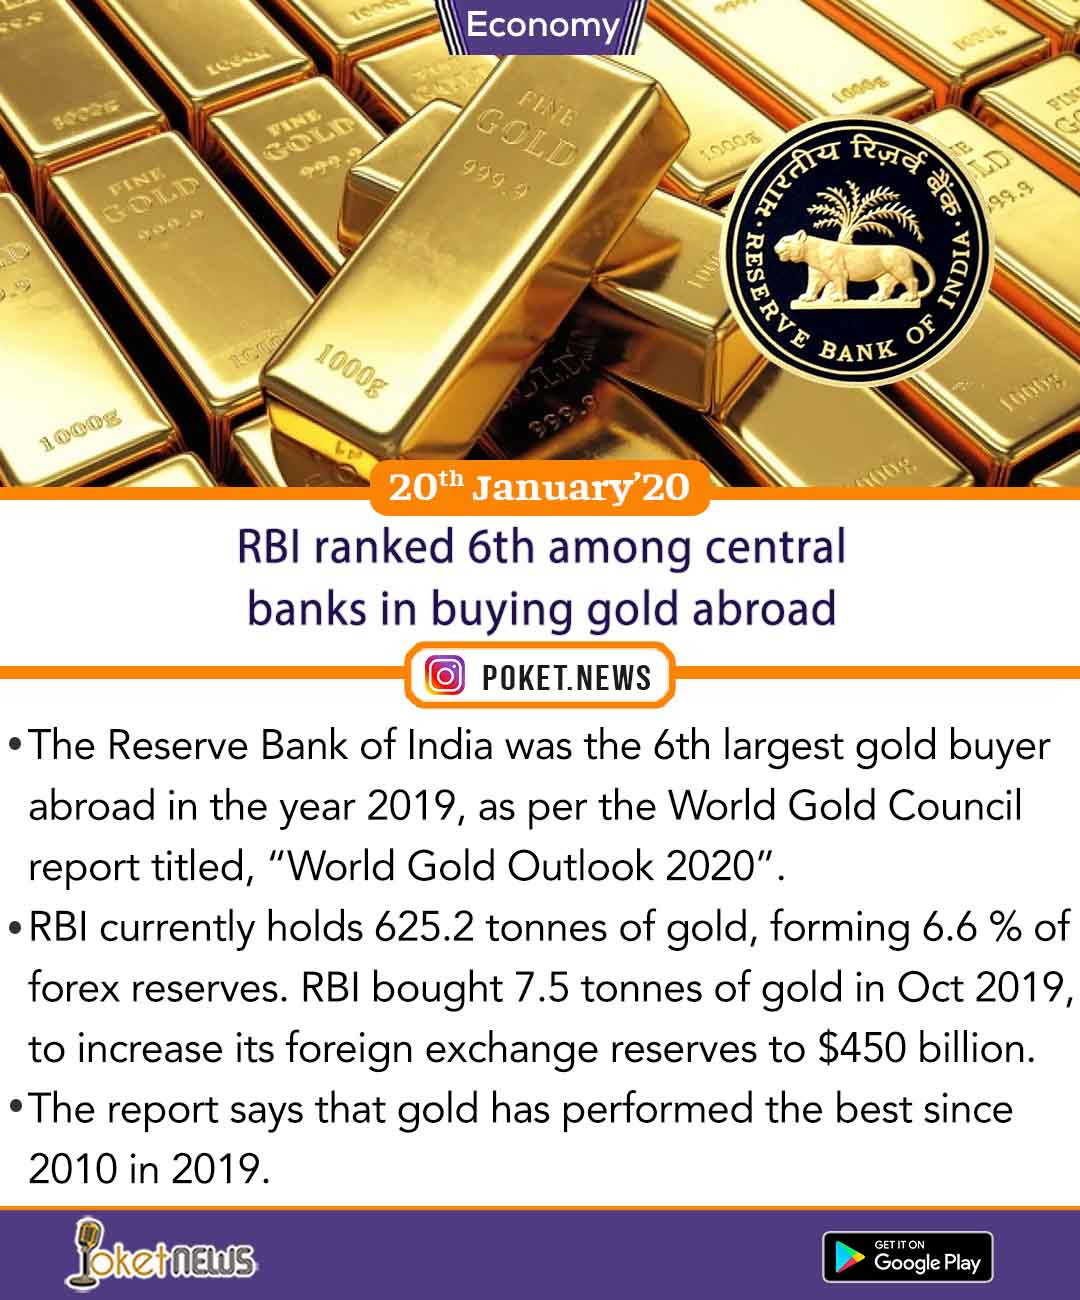 RBI ranked 6th among central banks in buying gold abroad